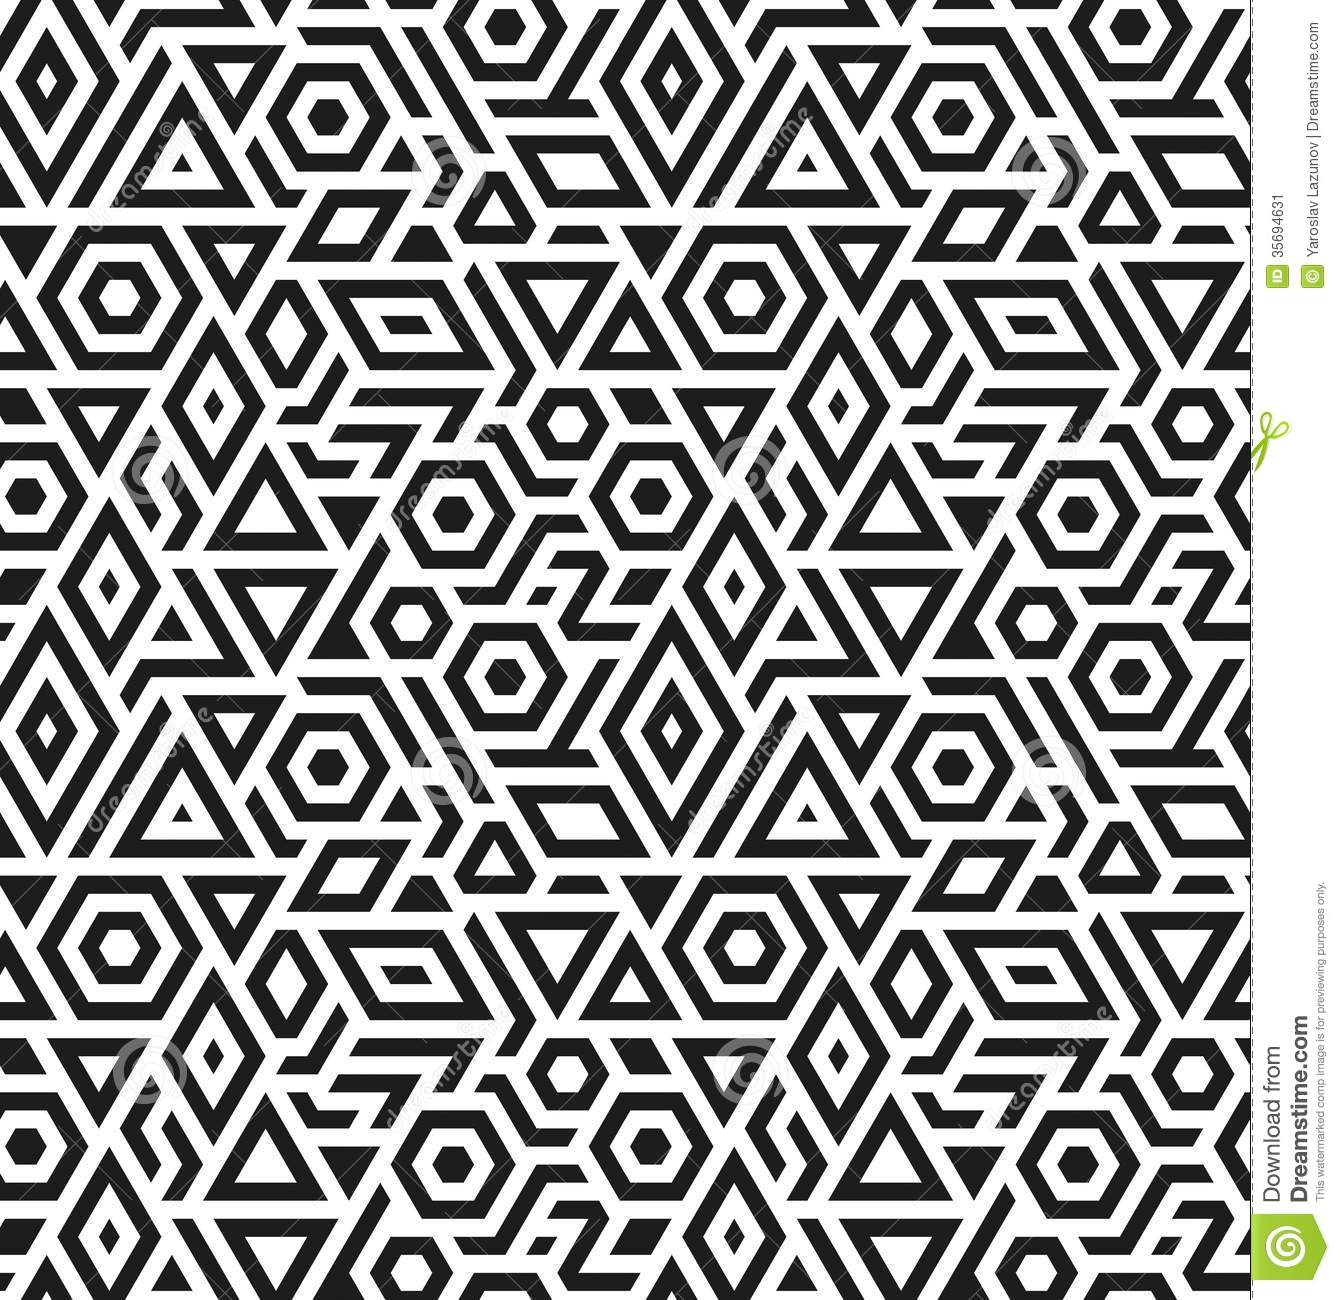 12 Free Vector Geometric Seamless Pattern Images - Geometric